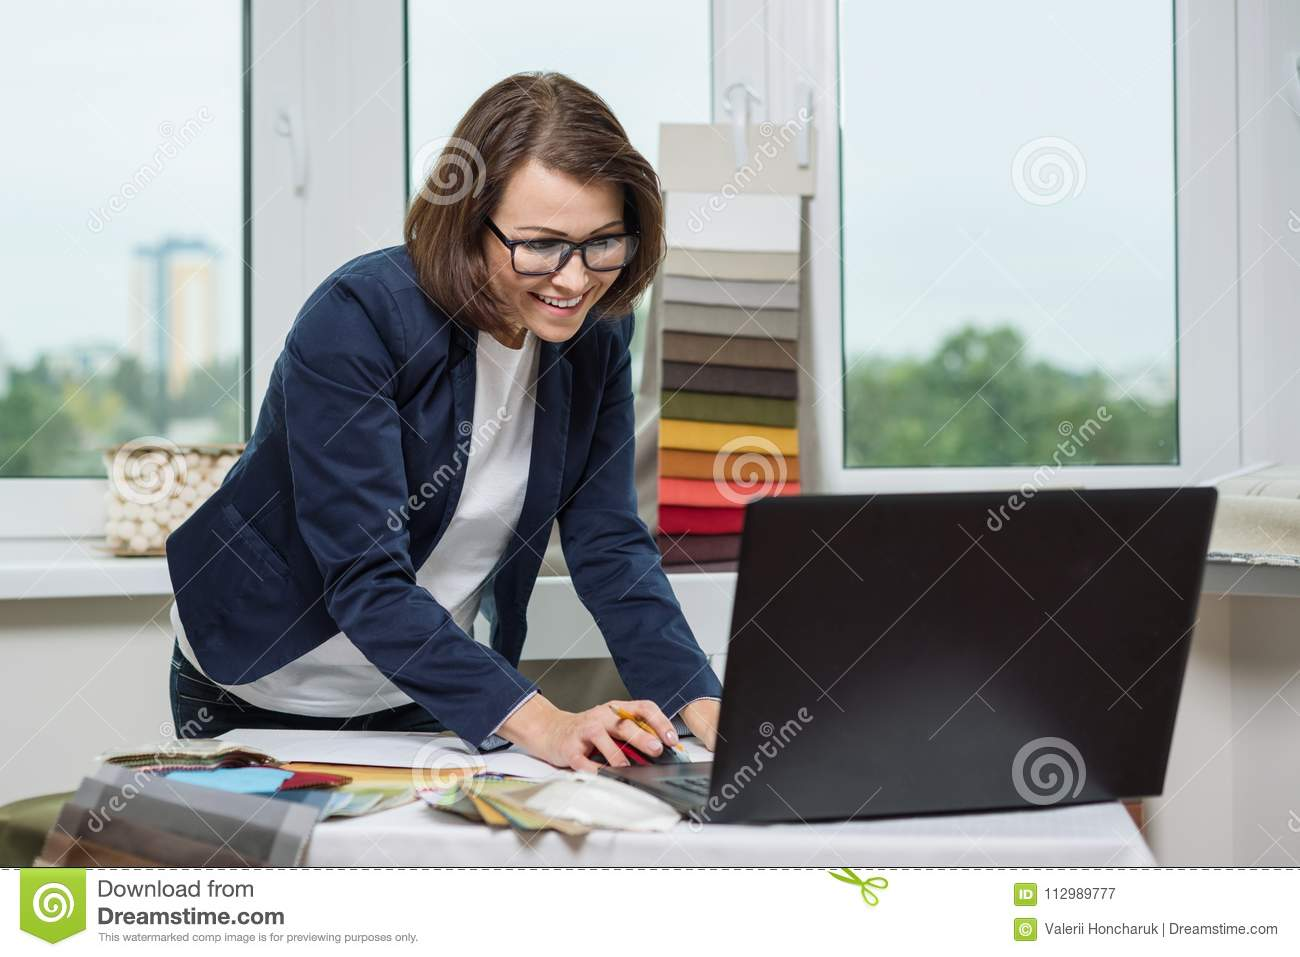 The interior designer, at the workplace in the office, communicates with customers on video communications. Discusses samples of f